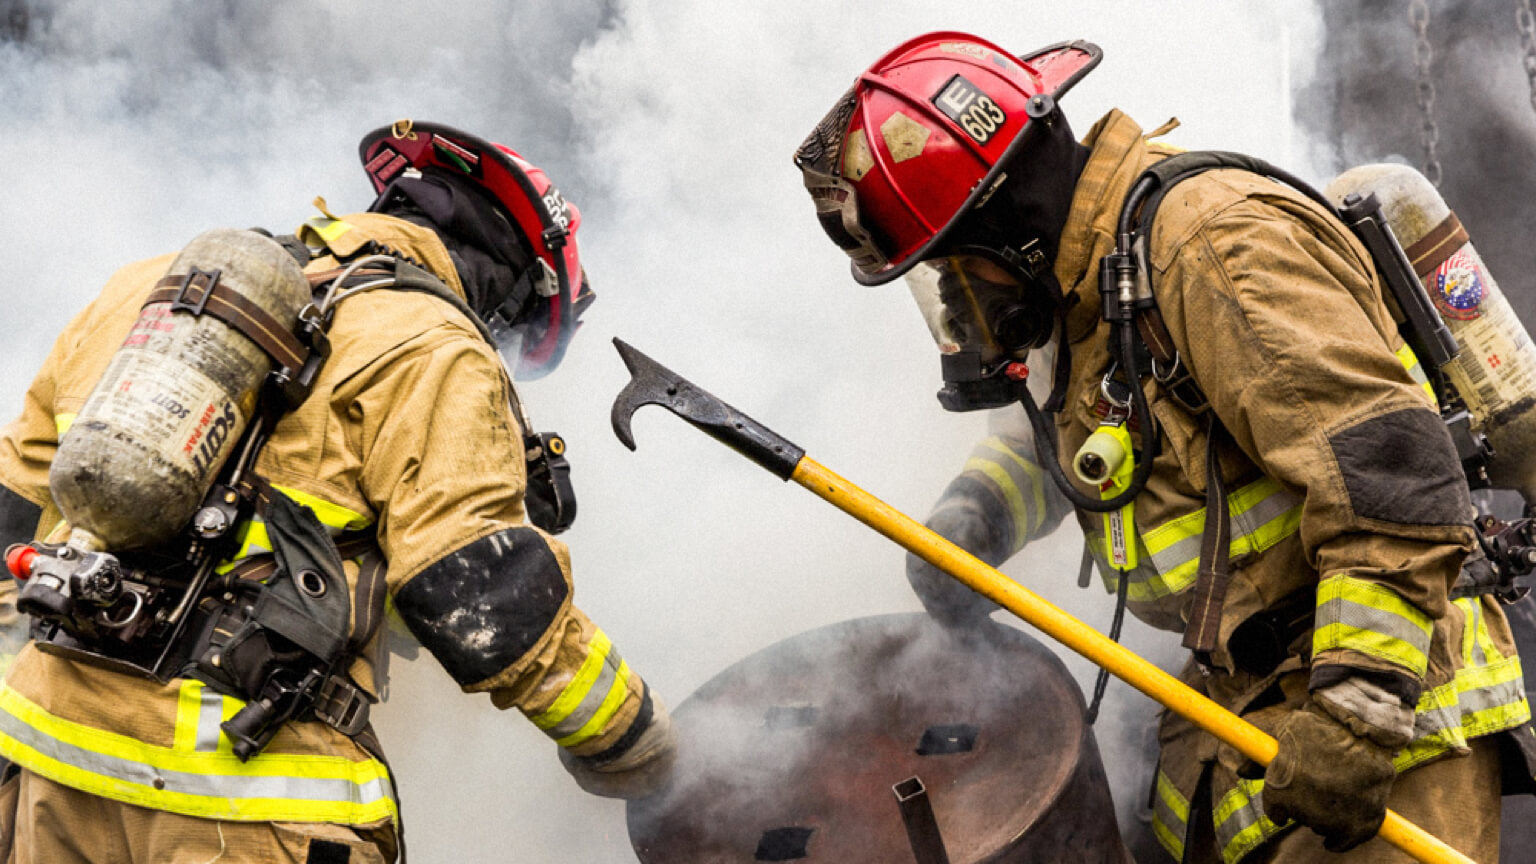 Two firefighters in full gear working to move a barrel while holding a hook.